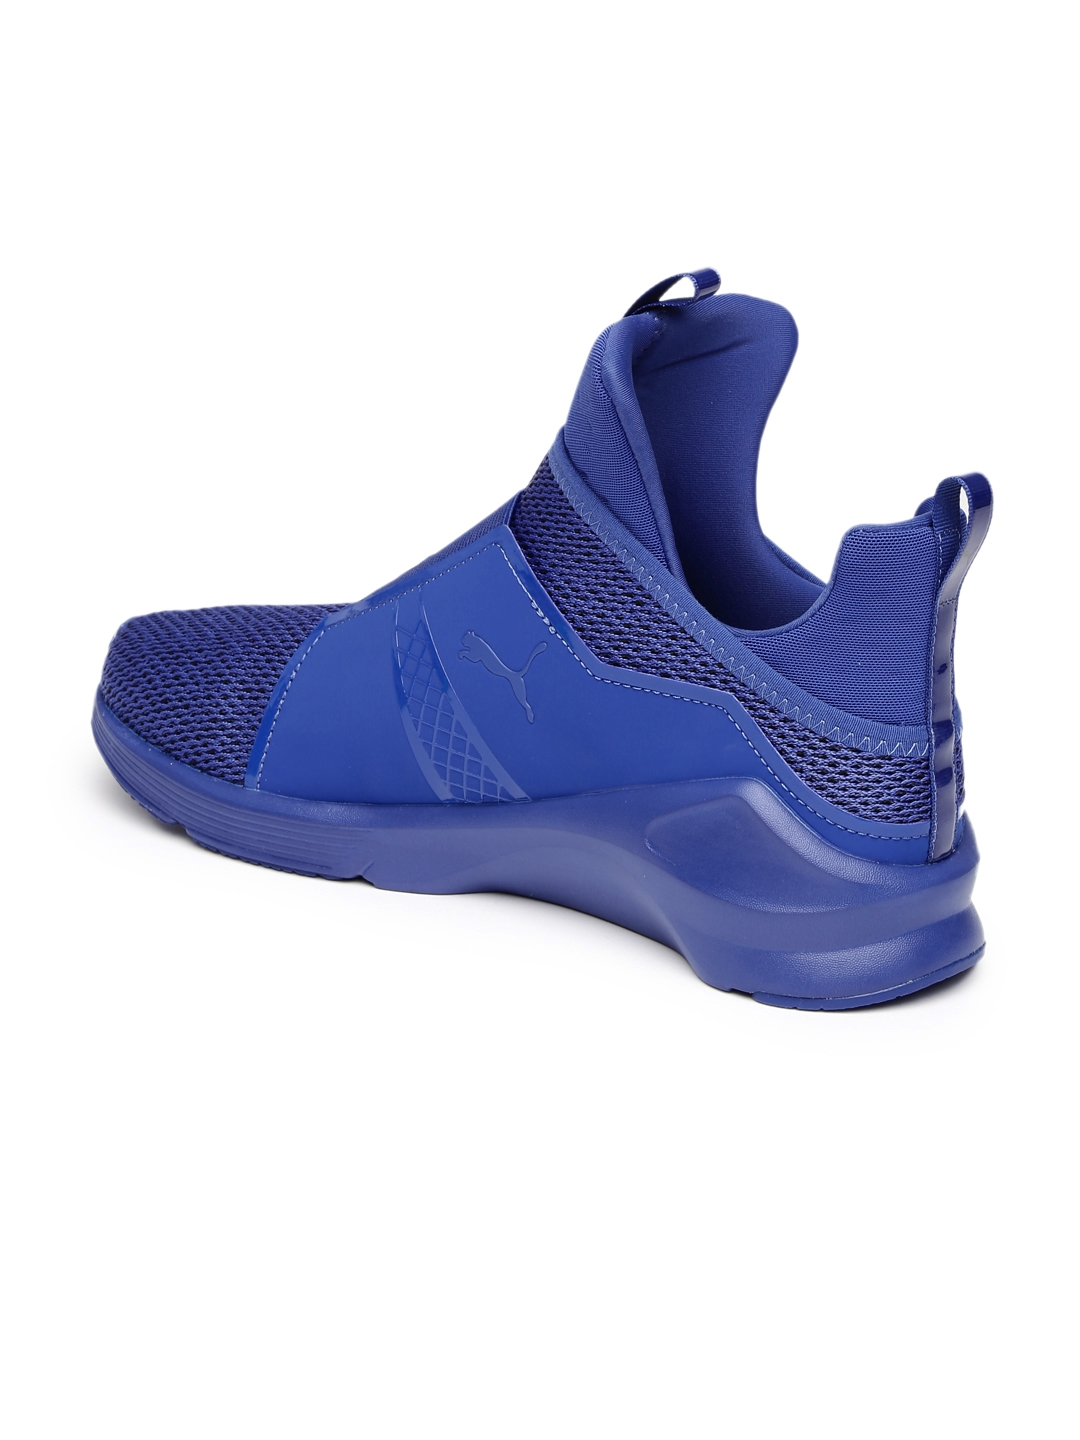 Buy PUMA Women Blue Fierce Knit Training Shoes - Sports Shoes for ... e4cad0bc3